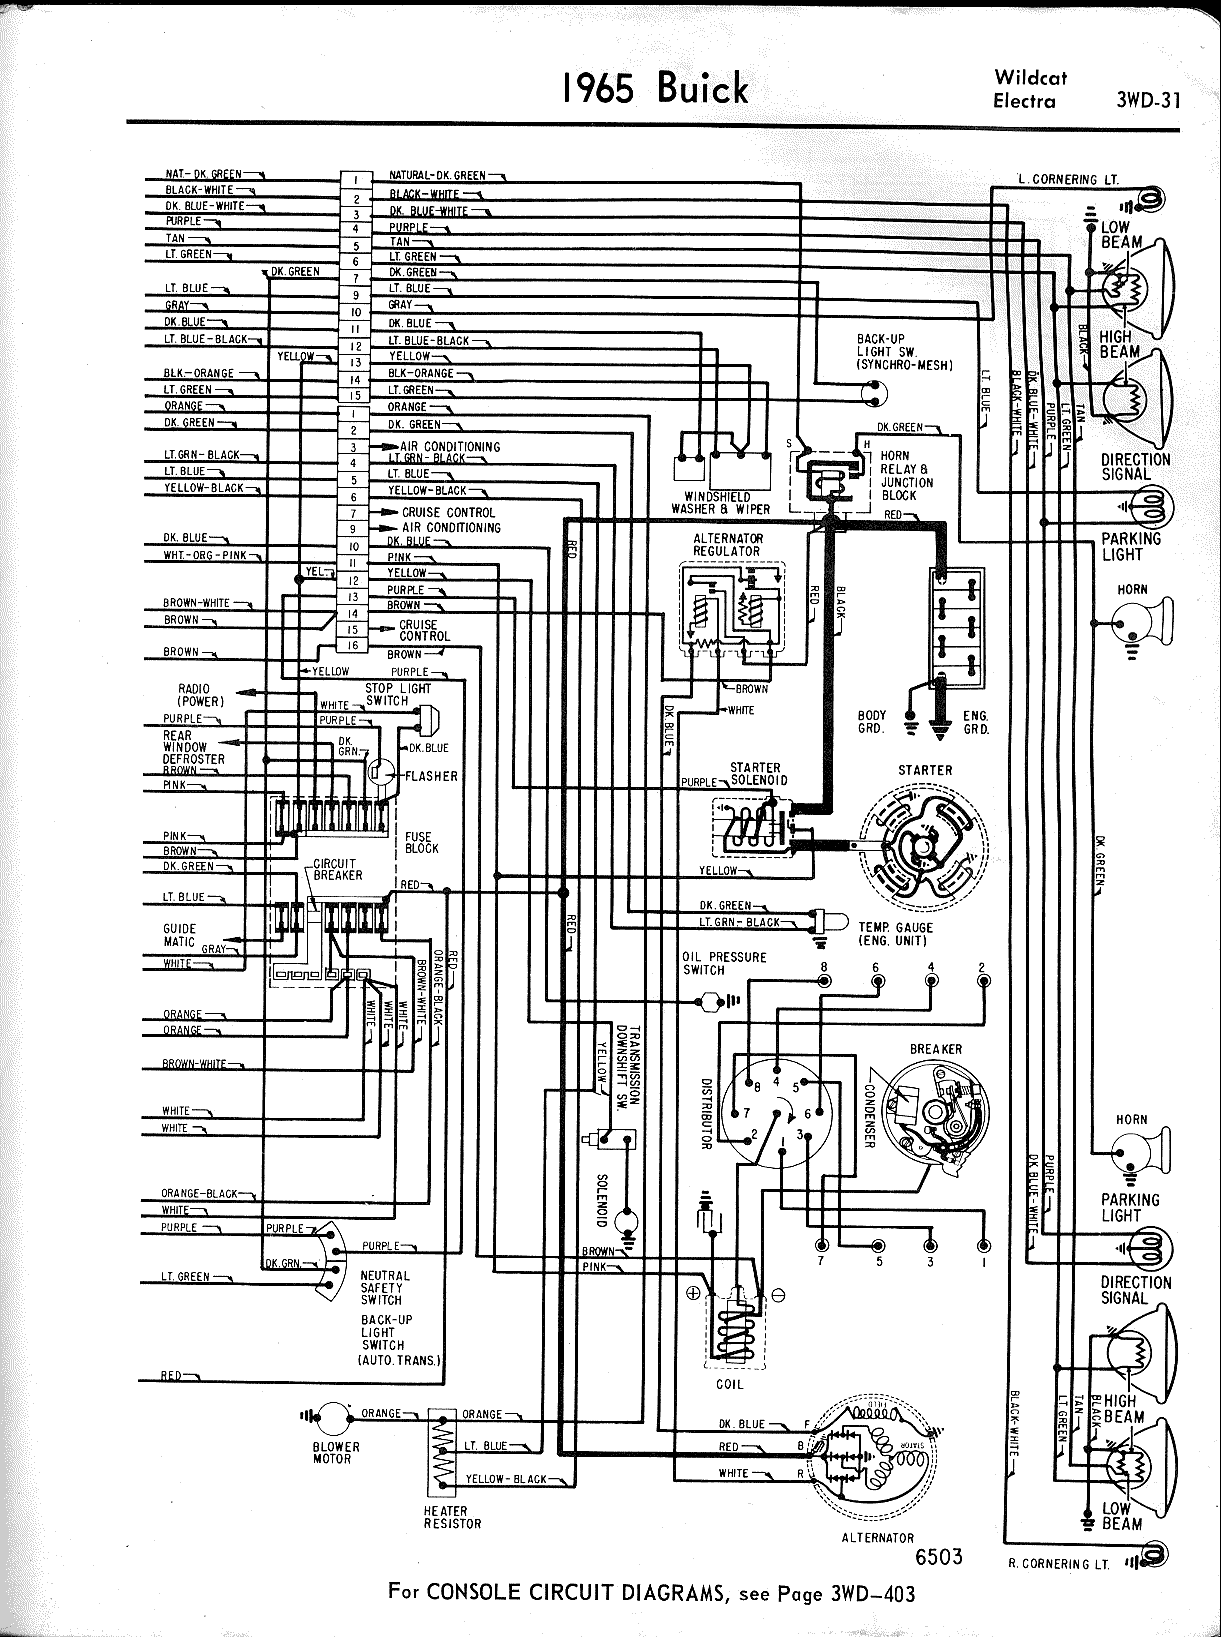 buick riviera wiring diagram buick wiring diagrams: 1957-1965 buick riviera wiring to battery diagram #11